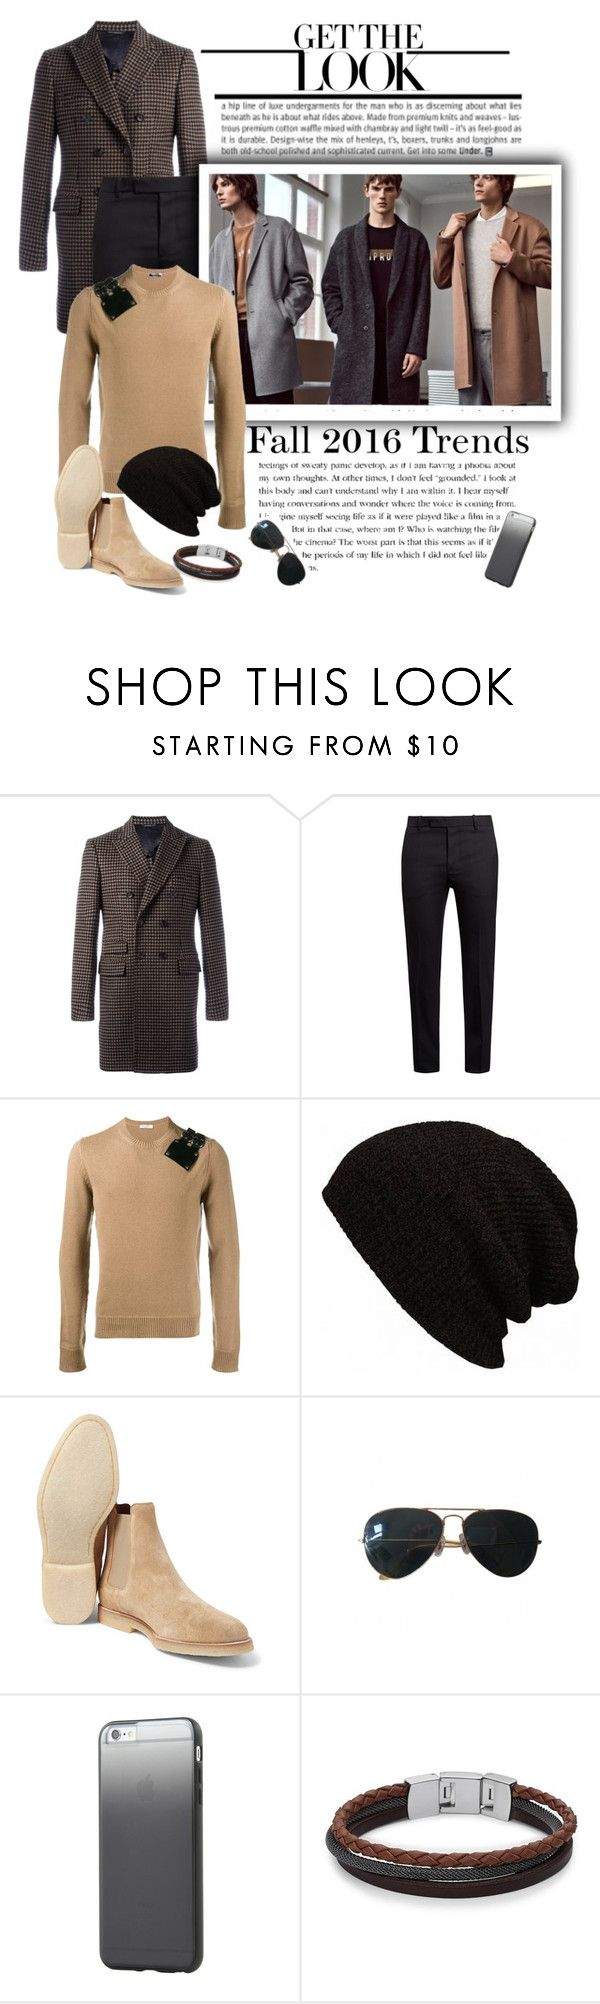 """""""Get the look: Mens knitwear"""" by emcf3548 ❤ liked on Polyvore featuring Tonello, Marni, Valentino, Ray-Ban, Tavik Swimwear, FOSSIL, men's fashion and menswear"""